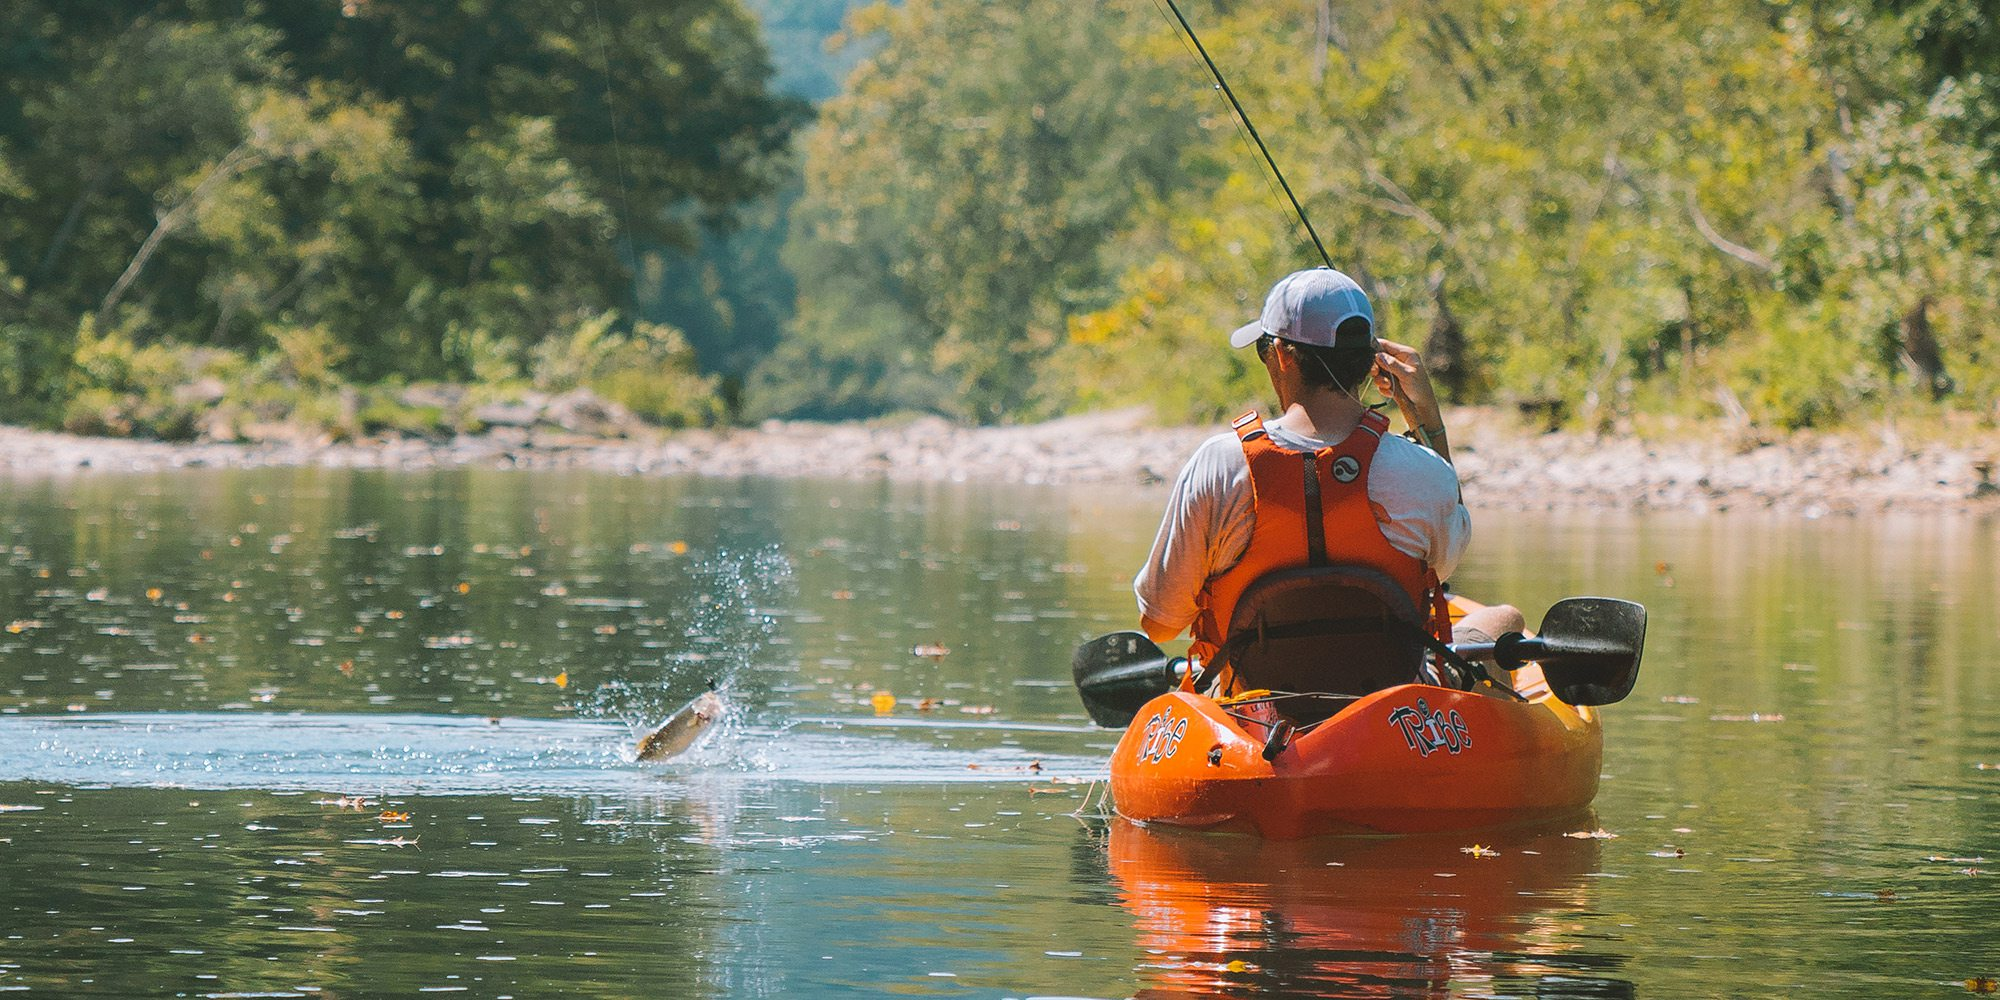 Fishing in a kayak on the Mulberry River